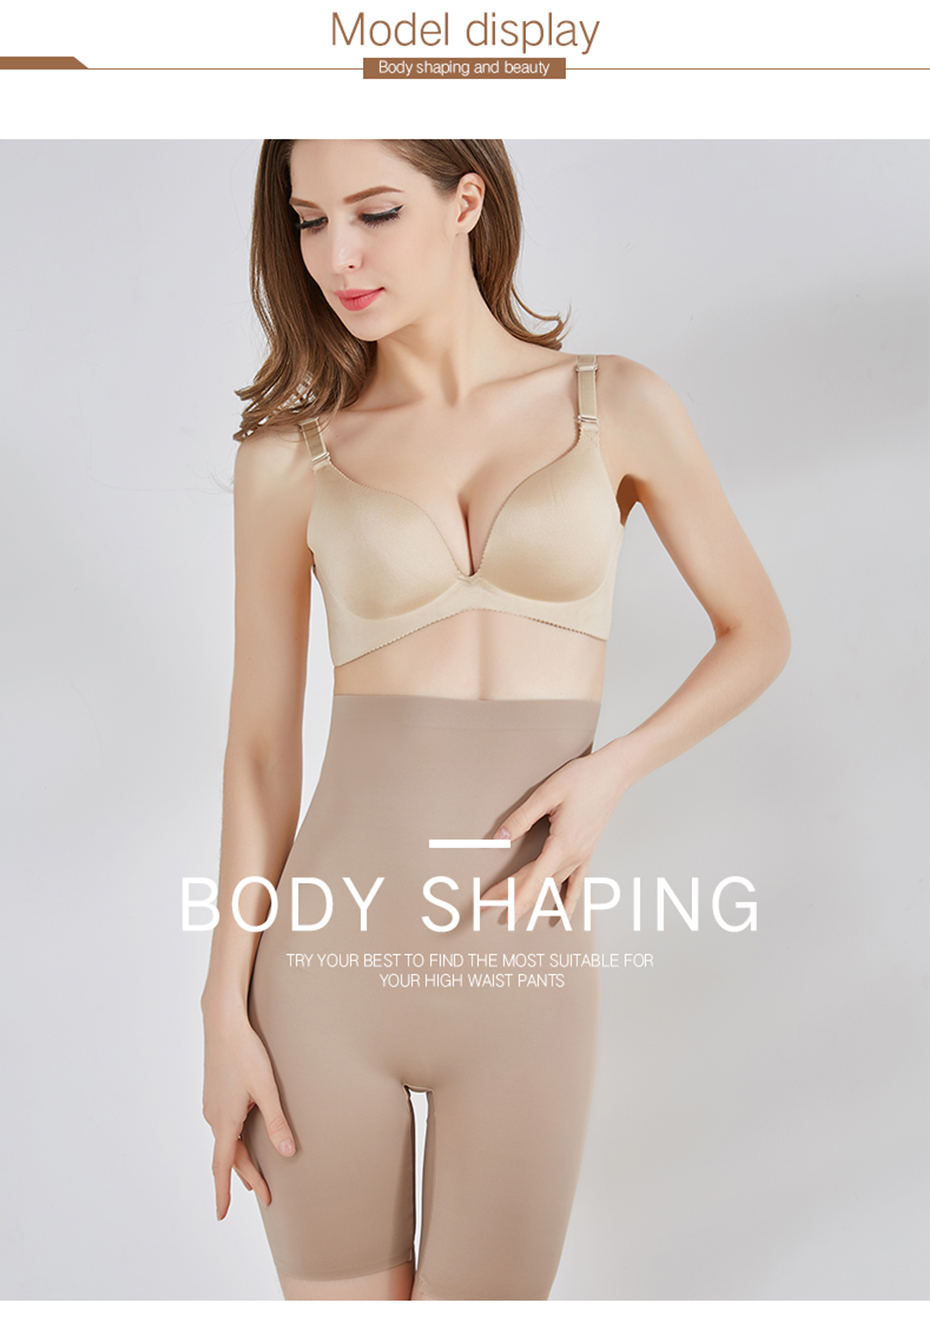 CXZD High Waist Slimming Control Panties Super Elastic Shaping Panties Breathable Seamfree Body Shapers Women Shapers Pants Underwear (7)